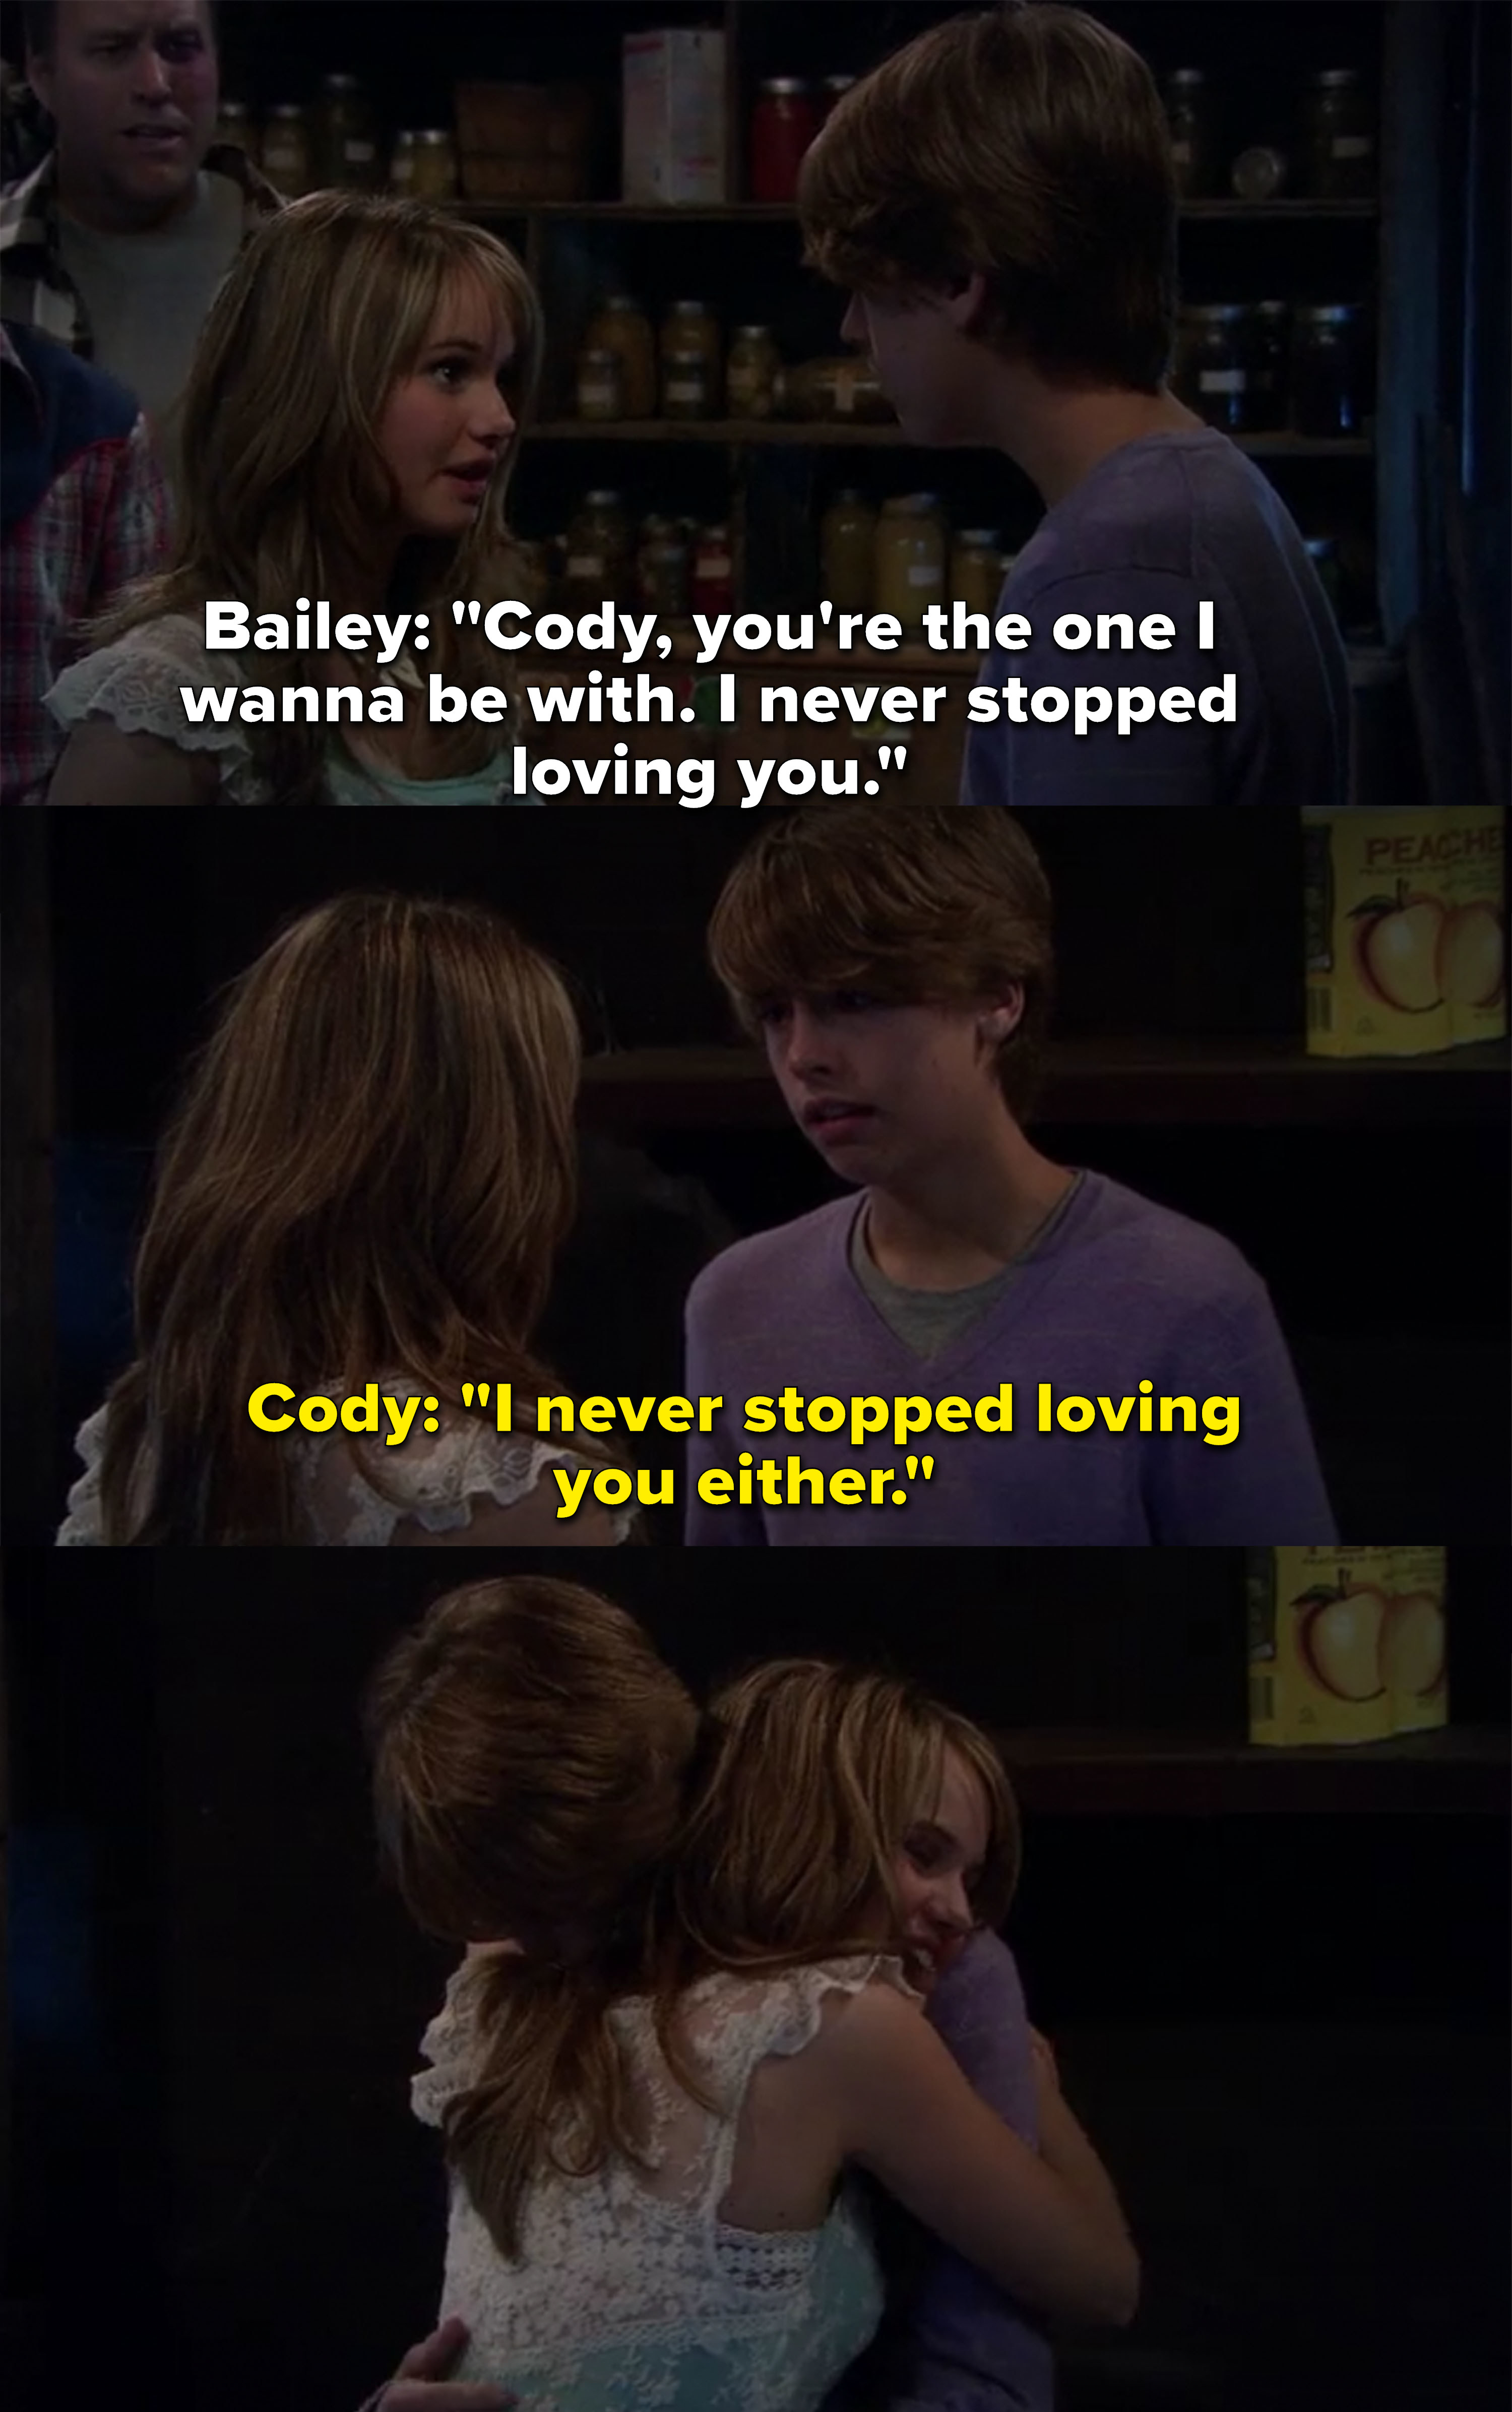 Bailey and Cody both say they never stopped loving each other